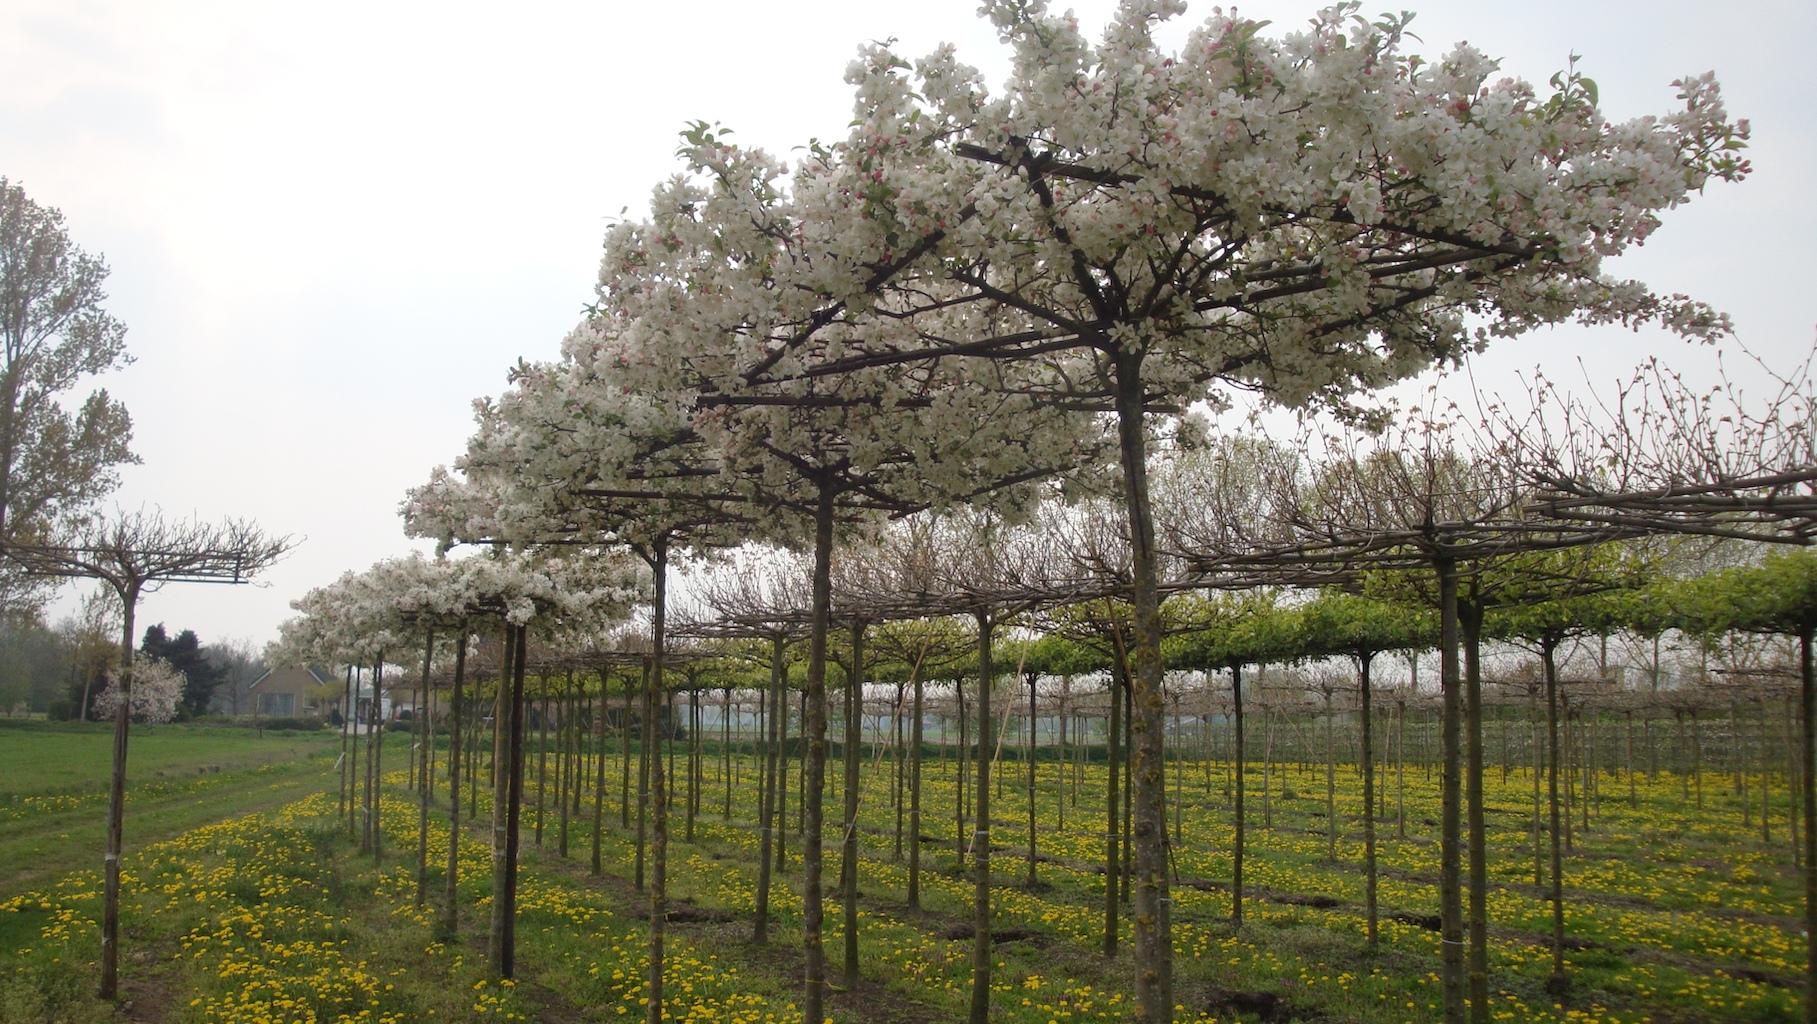 Malus 'Evereste' roof form trees in spring